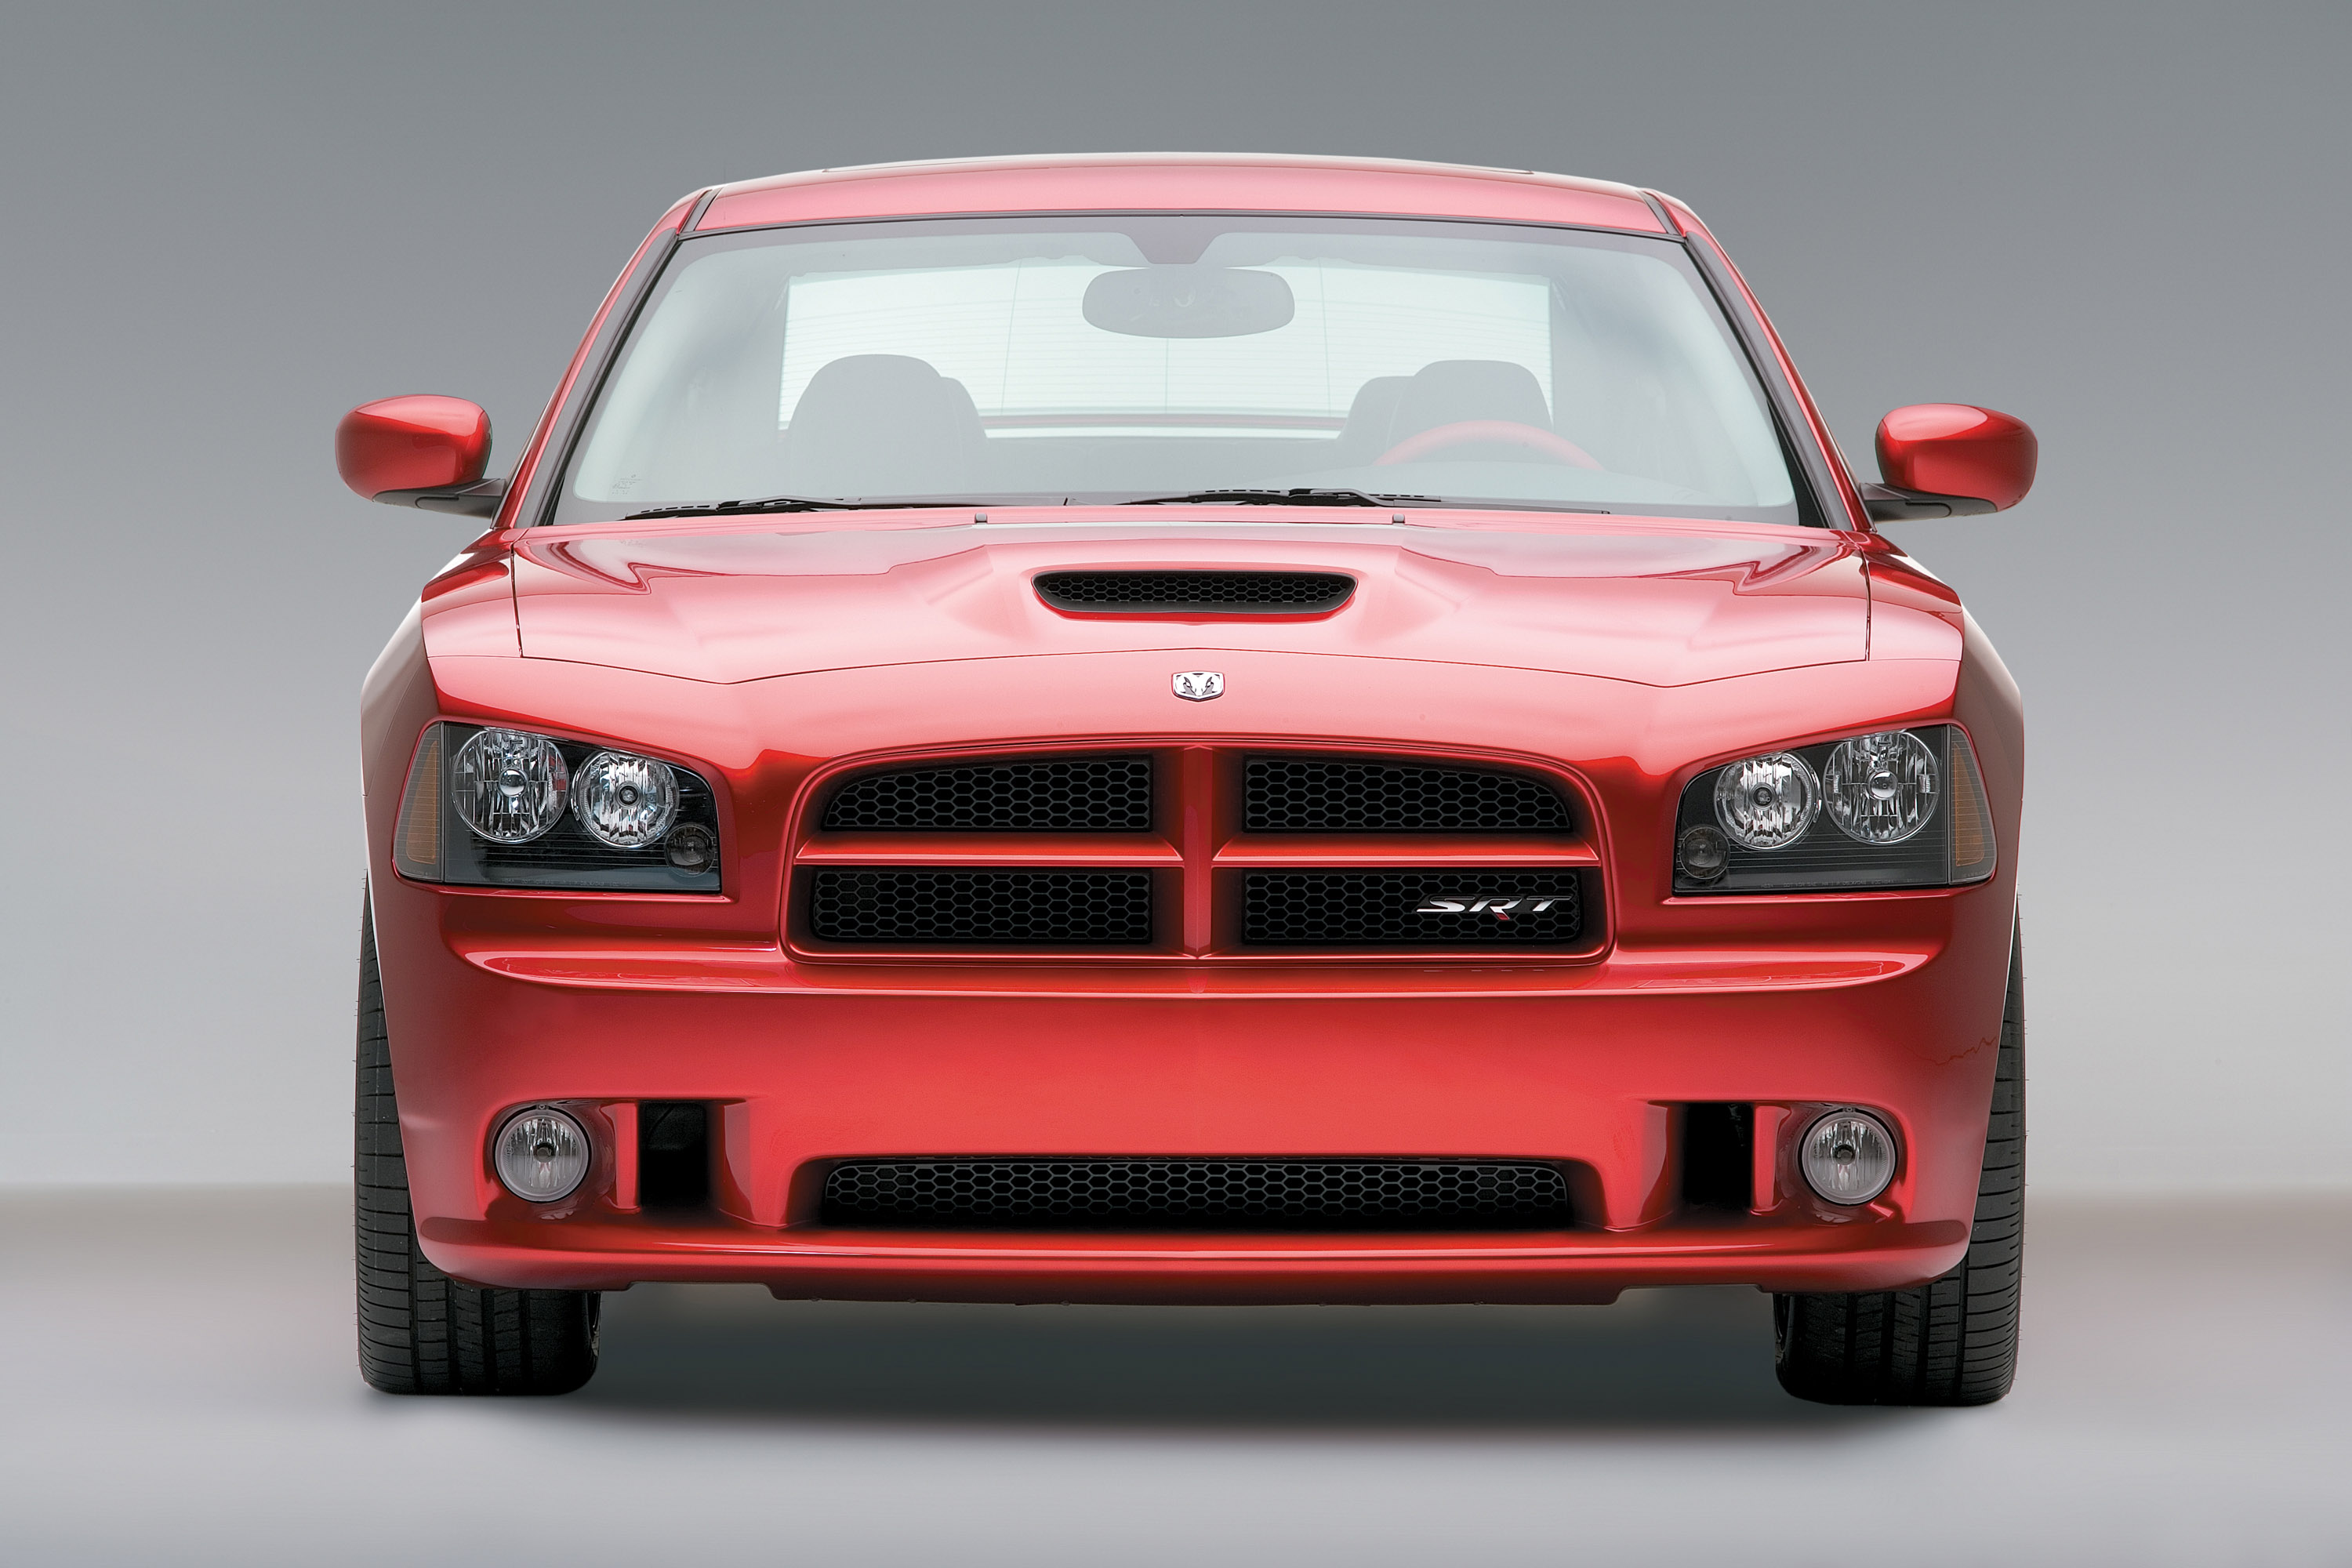 2006 Dodge Charger Parts Diagram In Addition 2006 Dodge Charger